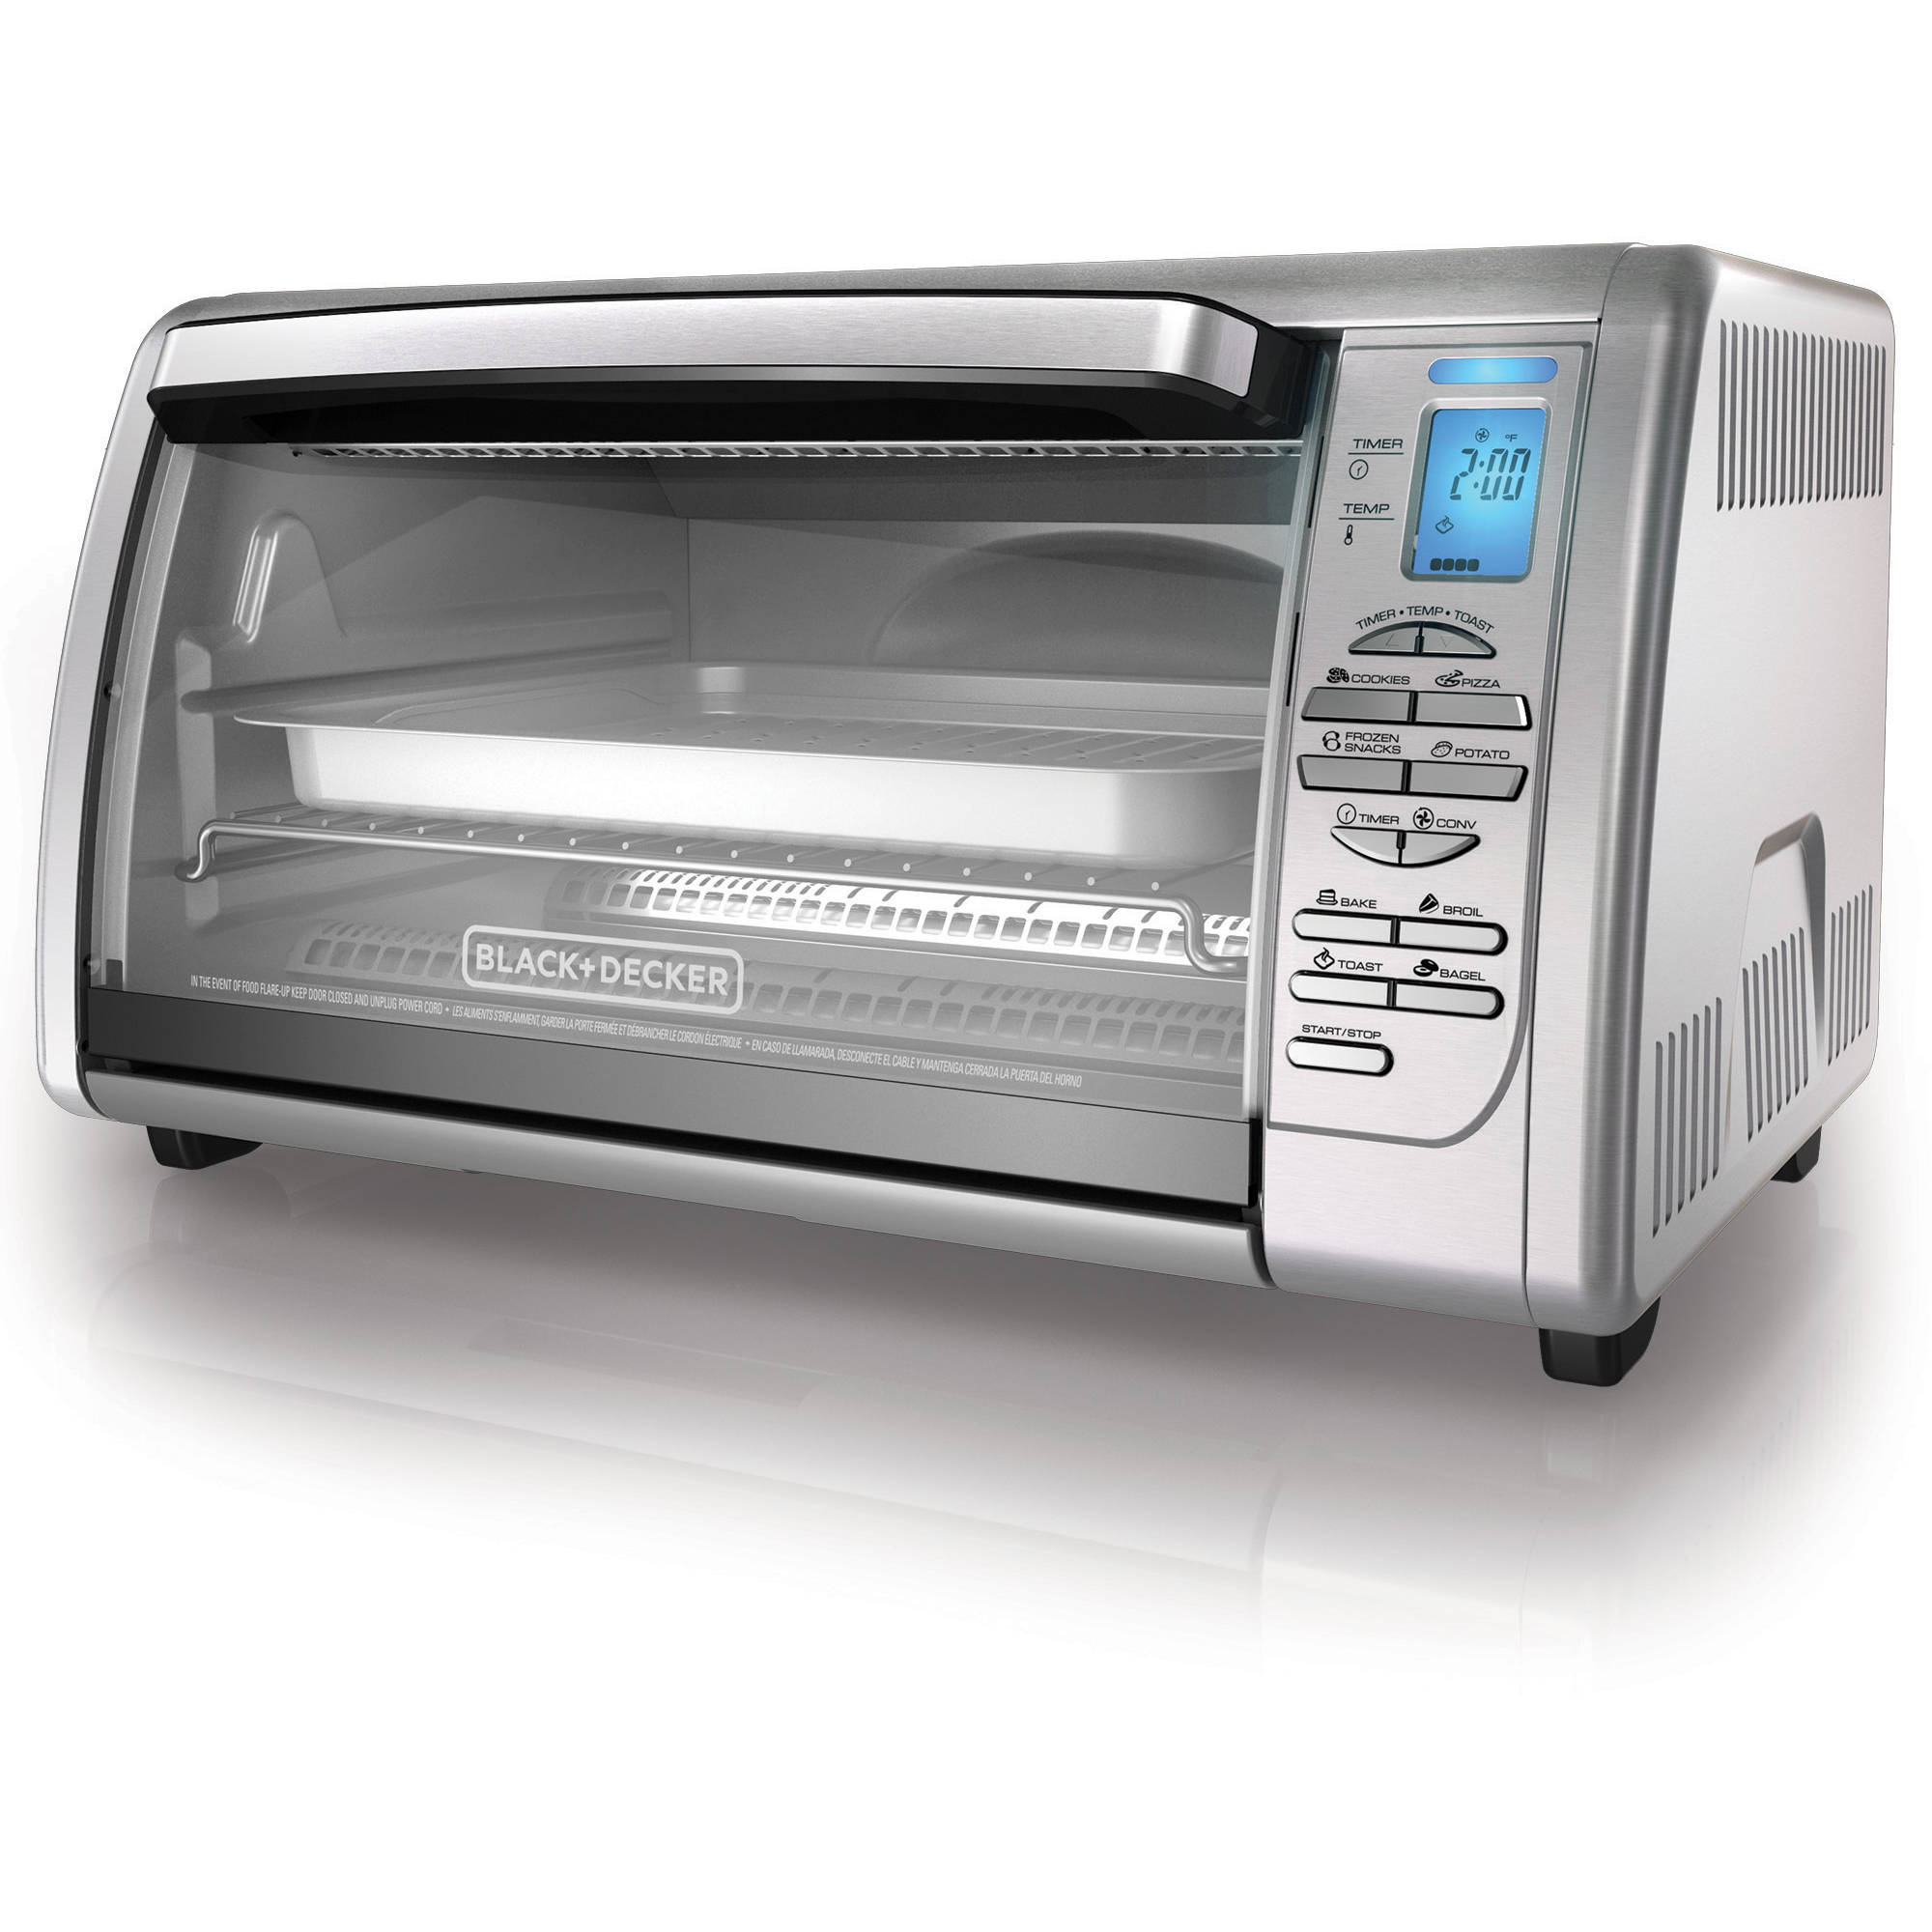 black+decker 6-slice digital convection toaster oven, stainless